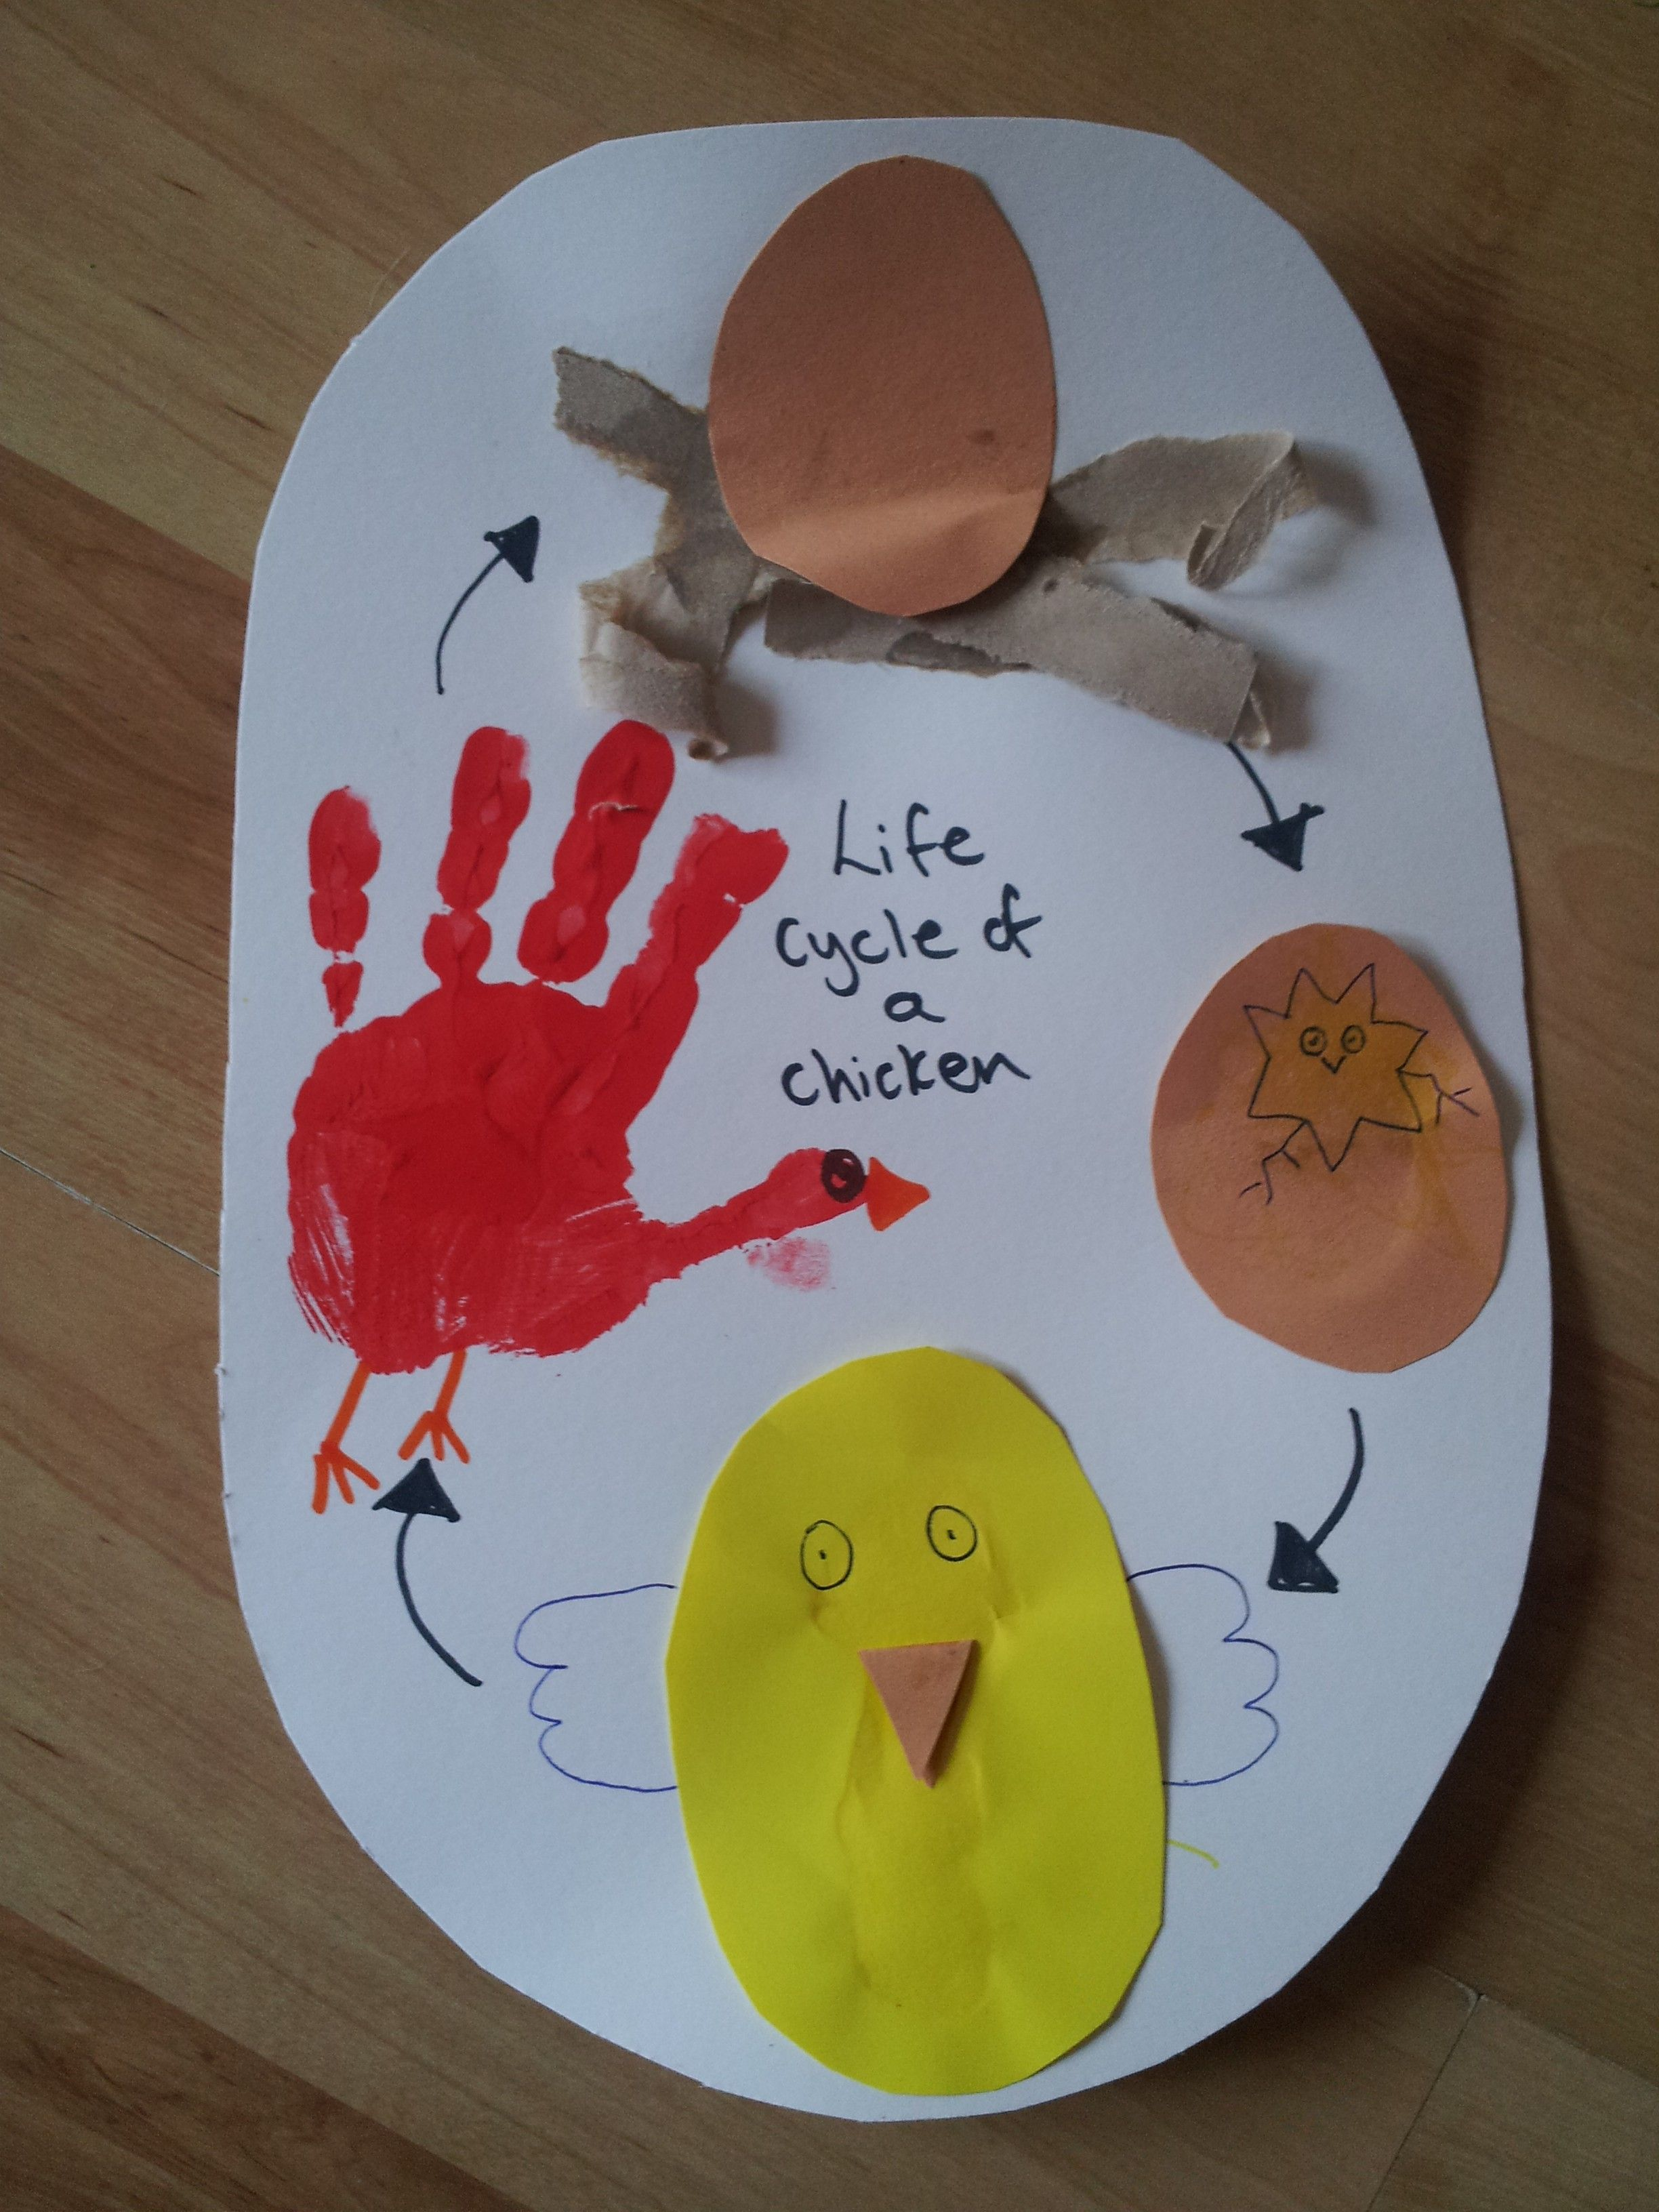 Life Cycle Of A Chicken Educational Fun Craft Idea